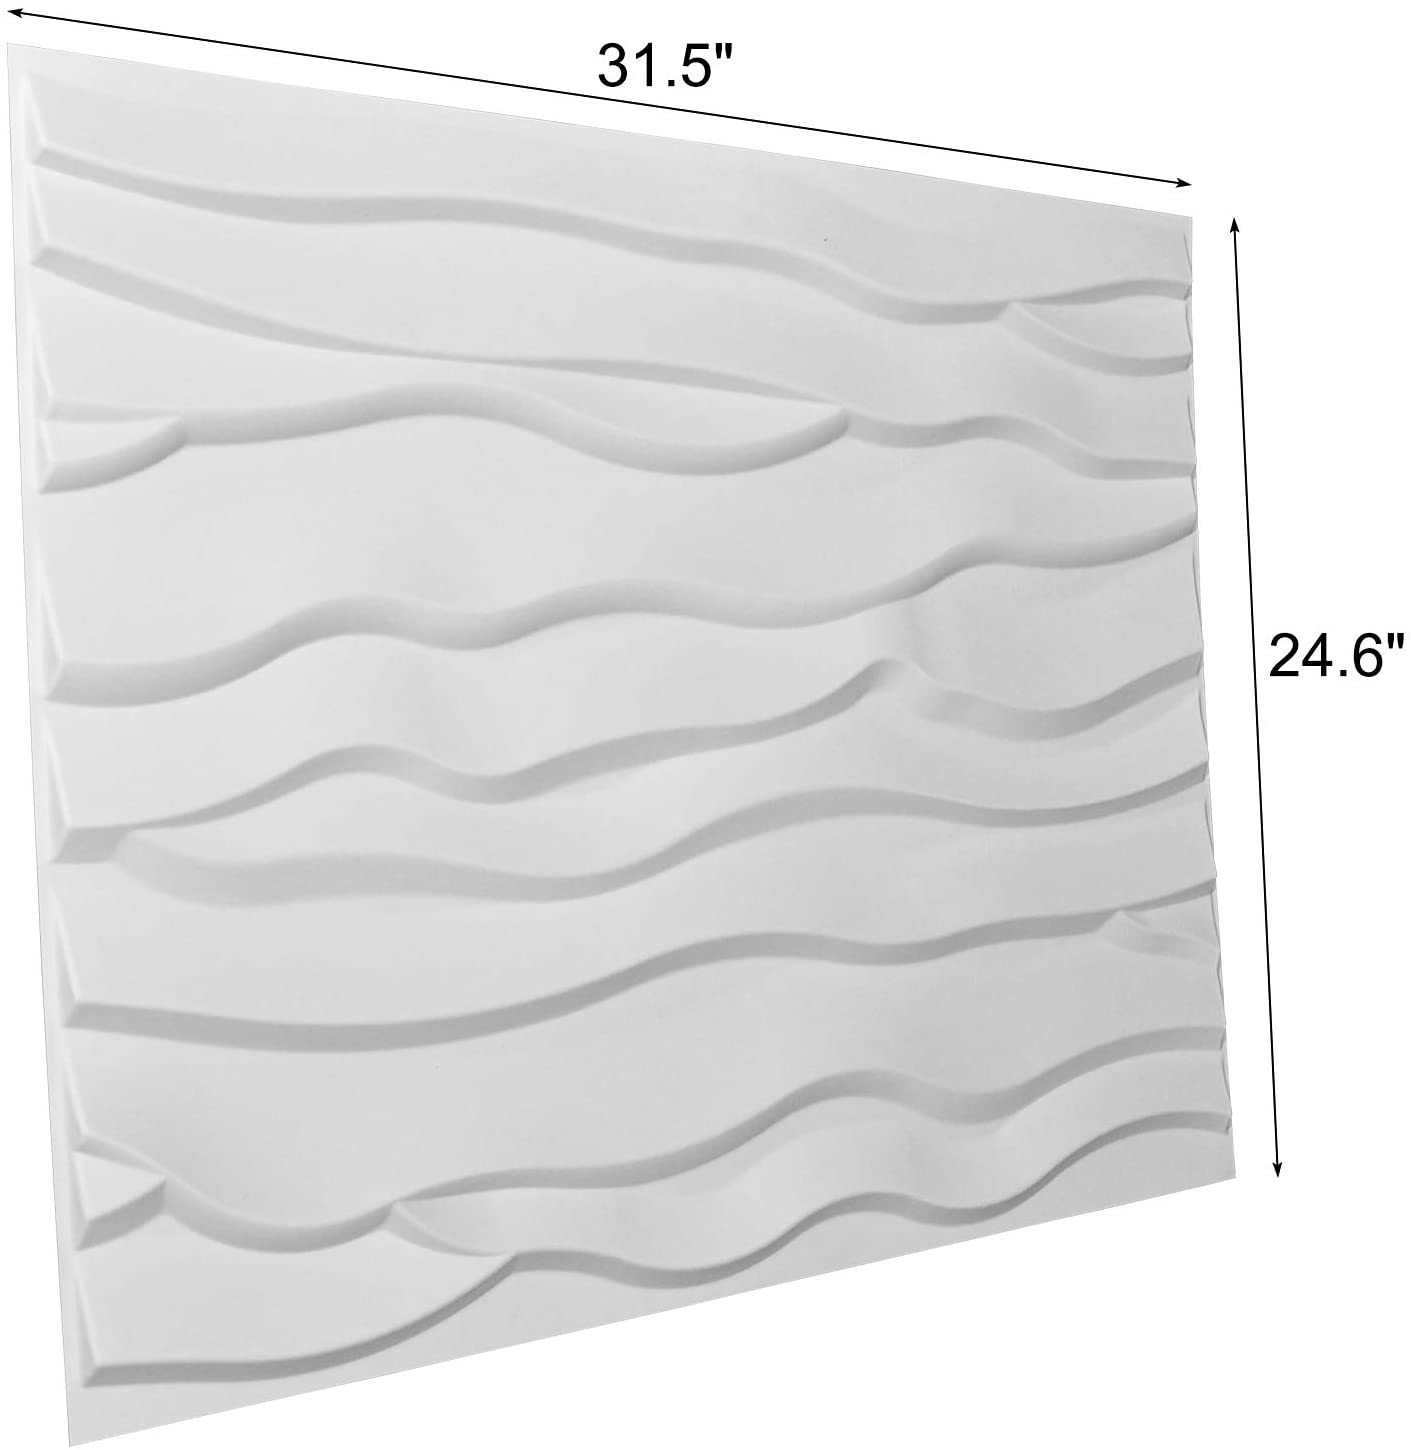 A21059 - 3D Textured Wainscoting 3D Wall Panels Off-white (Set of 6) 32 Sq.Ft